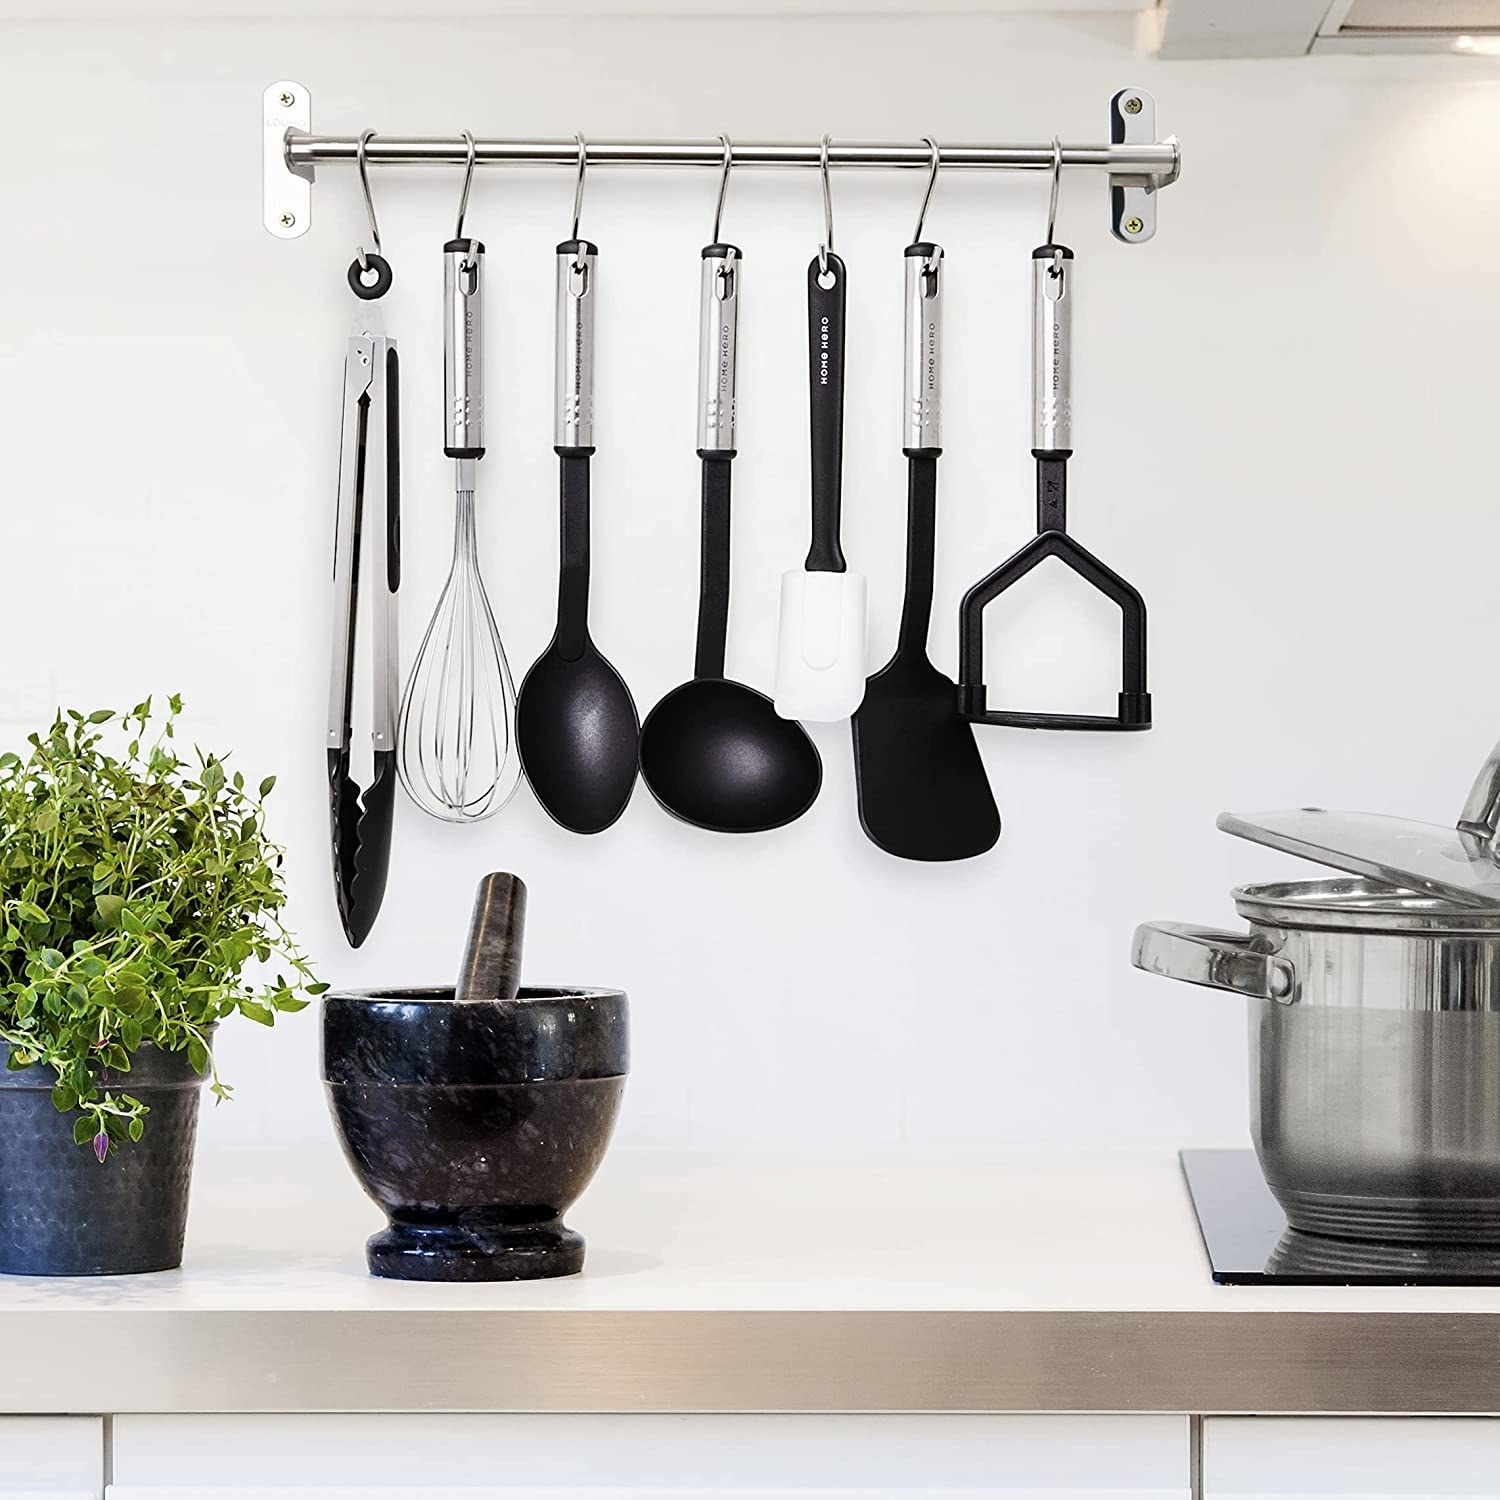 kitchen utensils hanging from a rack above a countertop